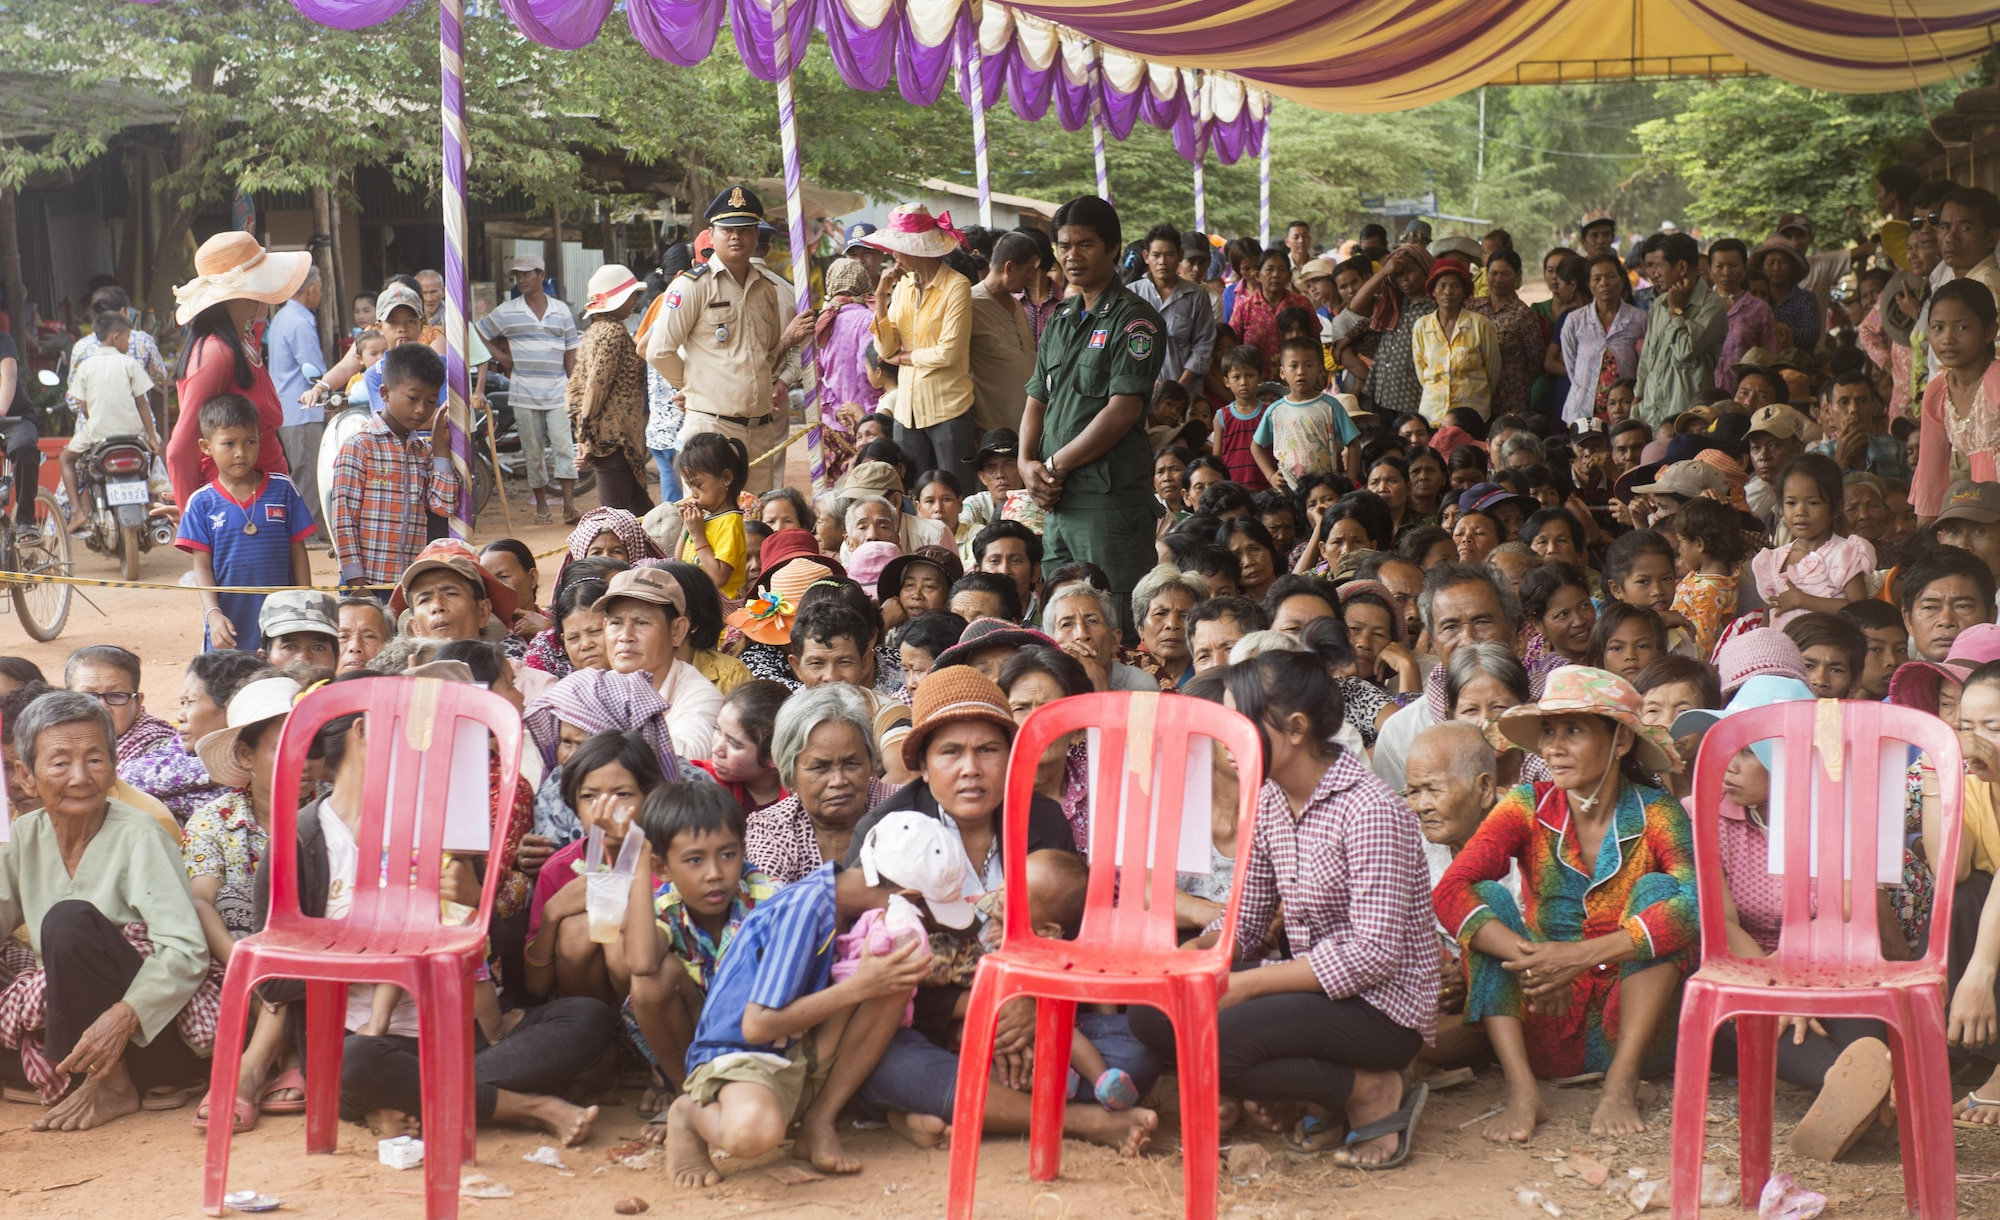 People from surrounding villages in Kampot Province wait patiently outside of a medical site to be seen during Pacific Angel 16-2, June 15, 2016, in Kampot Province, Cambodia. During Pacific Angel 16-2 the multilateral Pacific Angel medical team of providers saw more 1,500 patients within the first three days of the humanitarian mission. Pacific Angel ensures that the region's militaries are prepared to work together to address humanitarian crises in case of natural disasters. (U.S. Air Force photo by Senior Airman Omari Bernard/released)